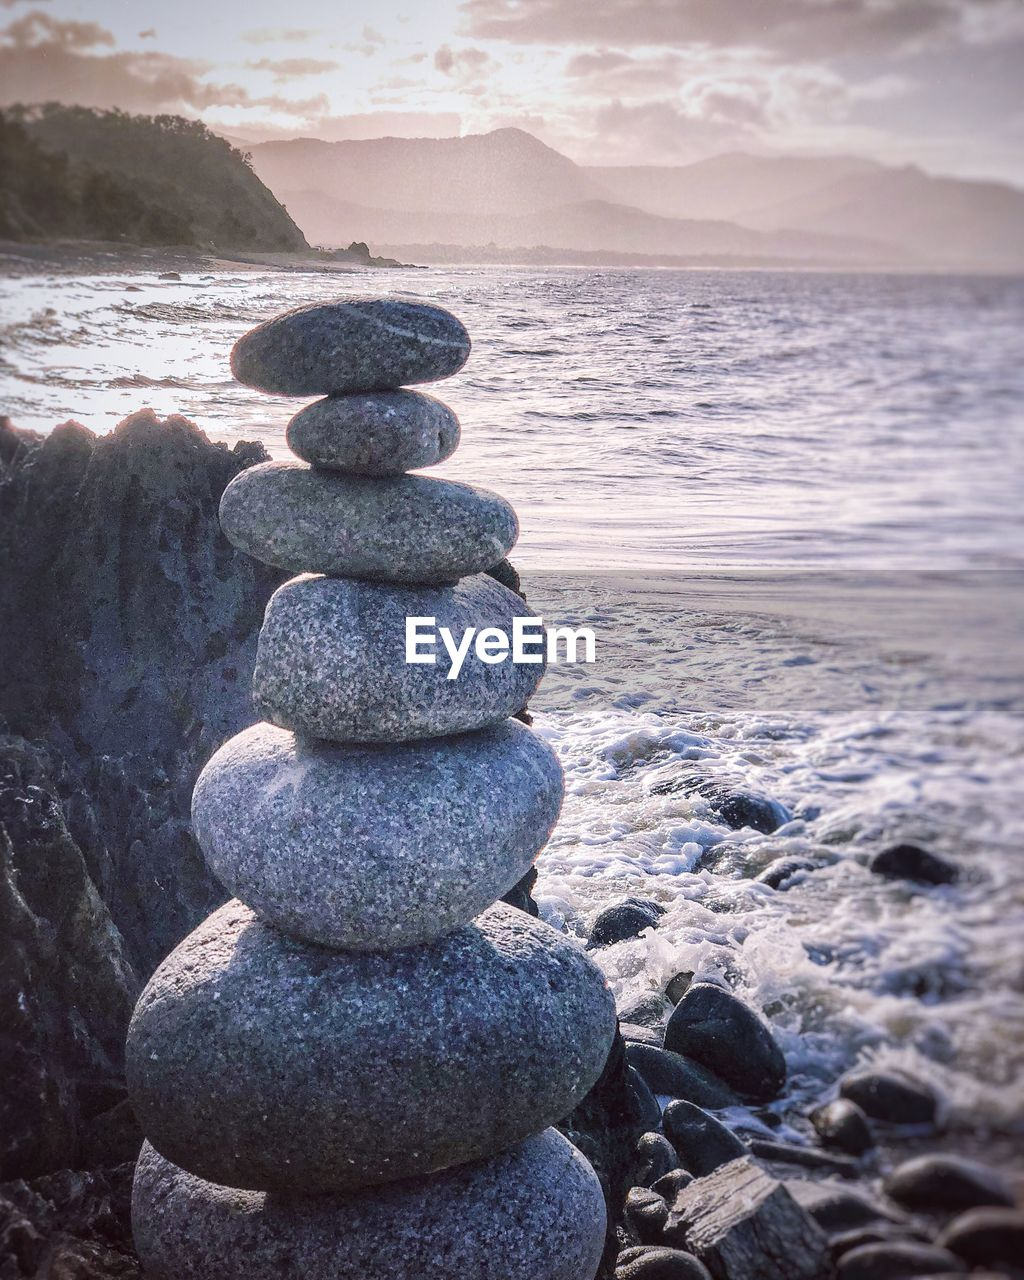 balance, stack, solid, rock, stone - object, water, stone, sea, tranquility, rock - object, beach, land, pebble, nature, beauty in nature, zen-like, tranquil scene, scenics - nature, no people, horizon over water, outdoors, stack rock